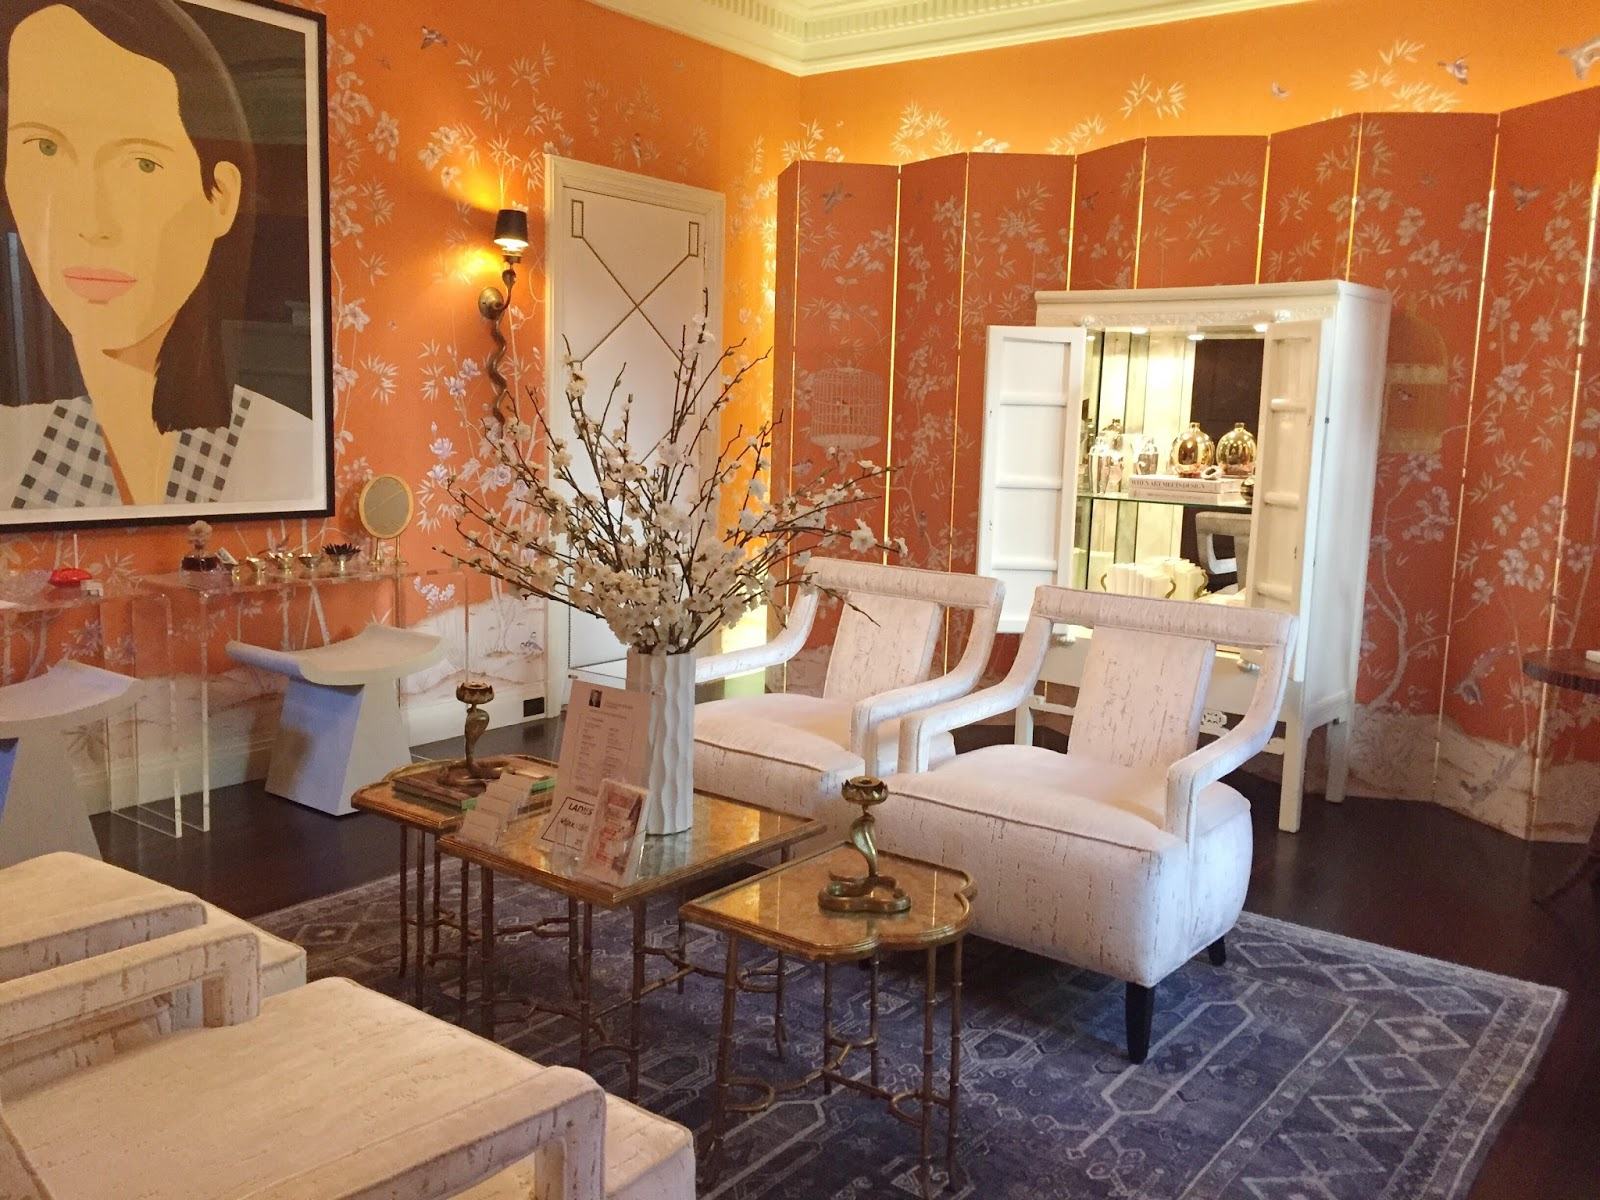 Greystone maison de luxe gisele chic for Maison luxe usa